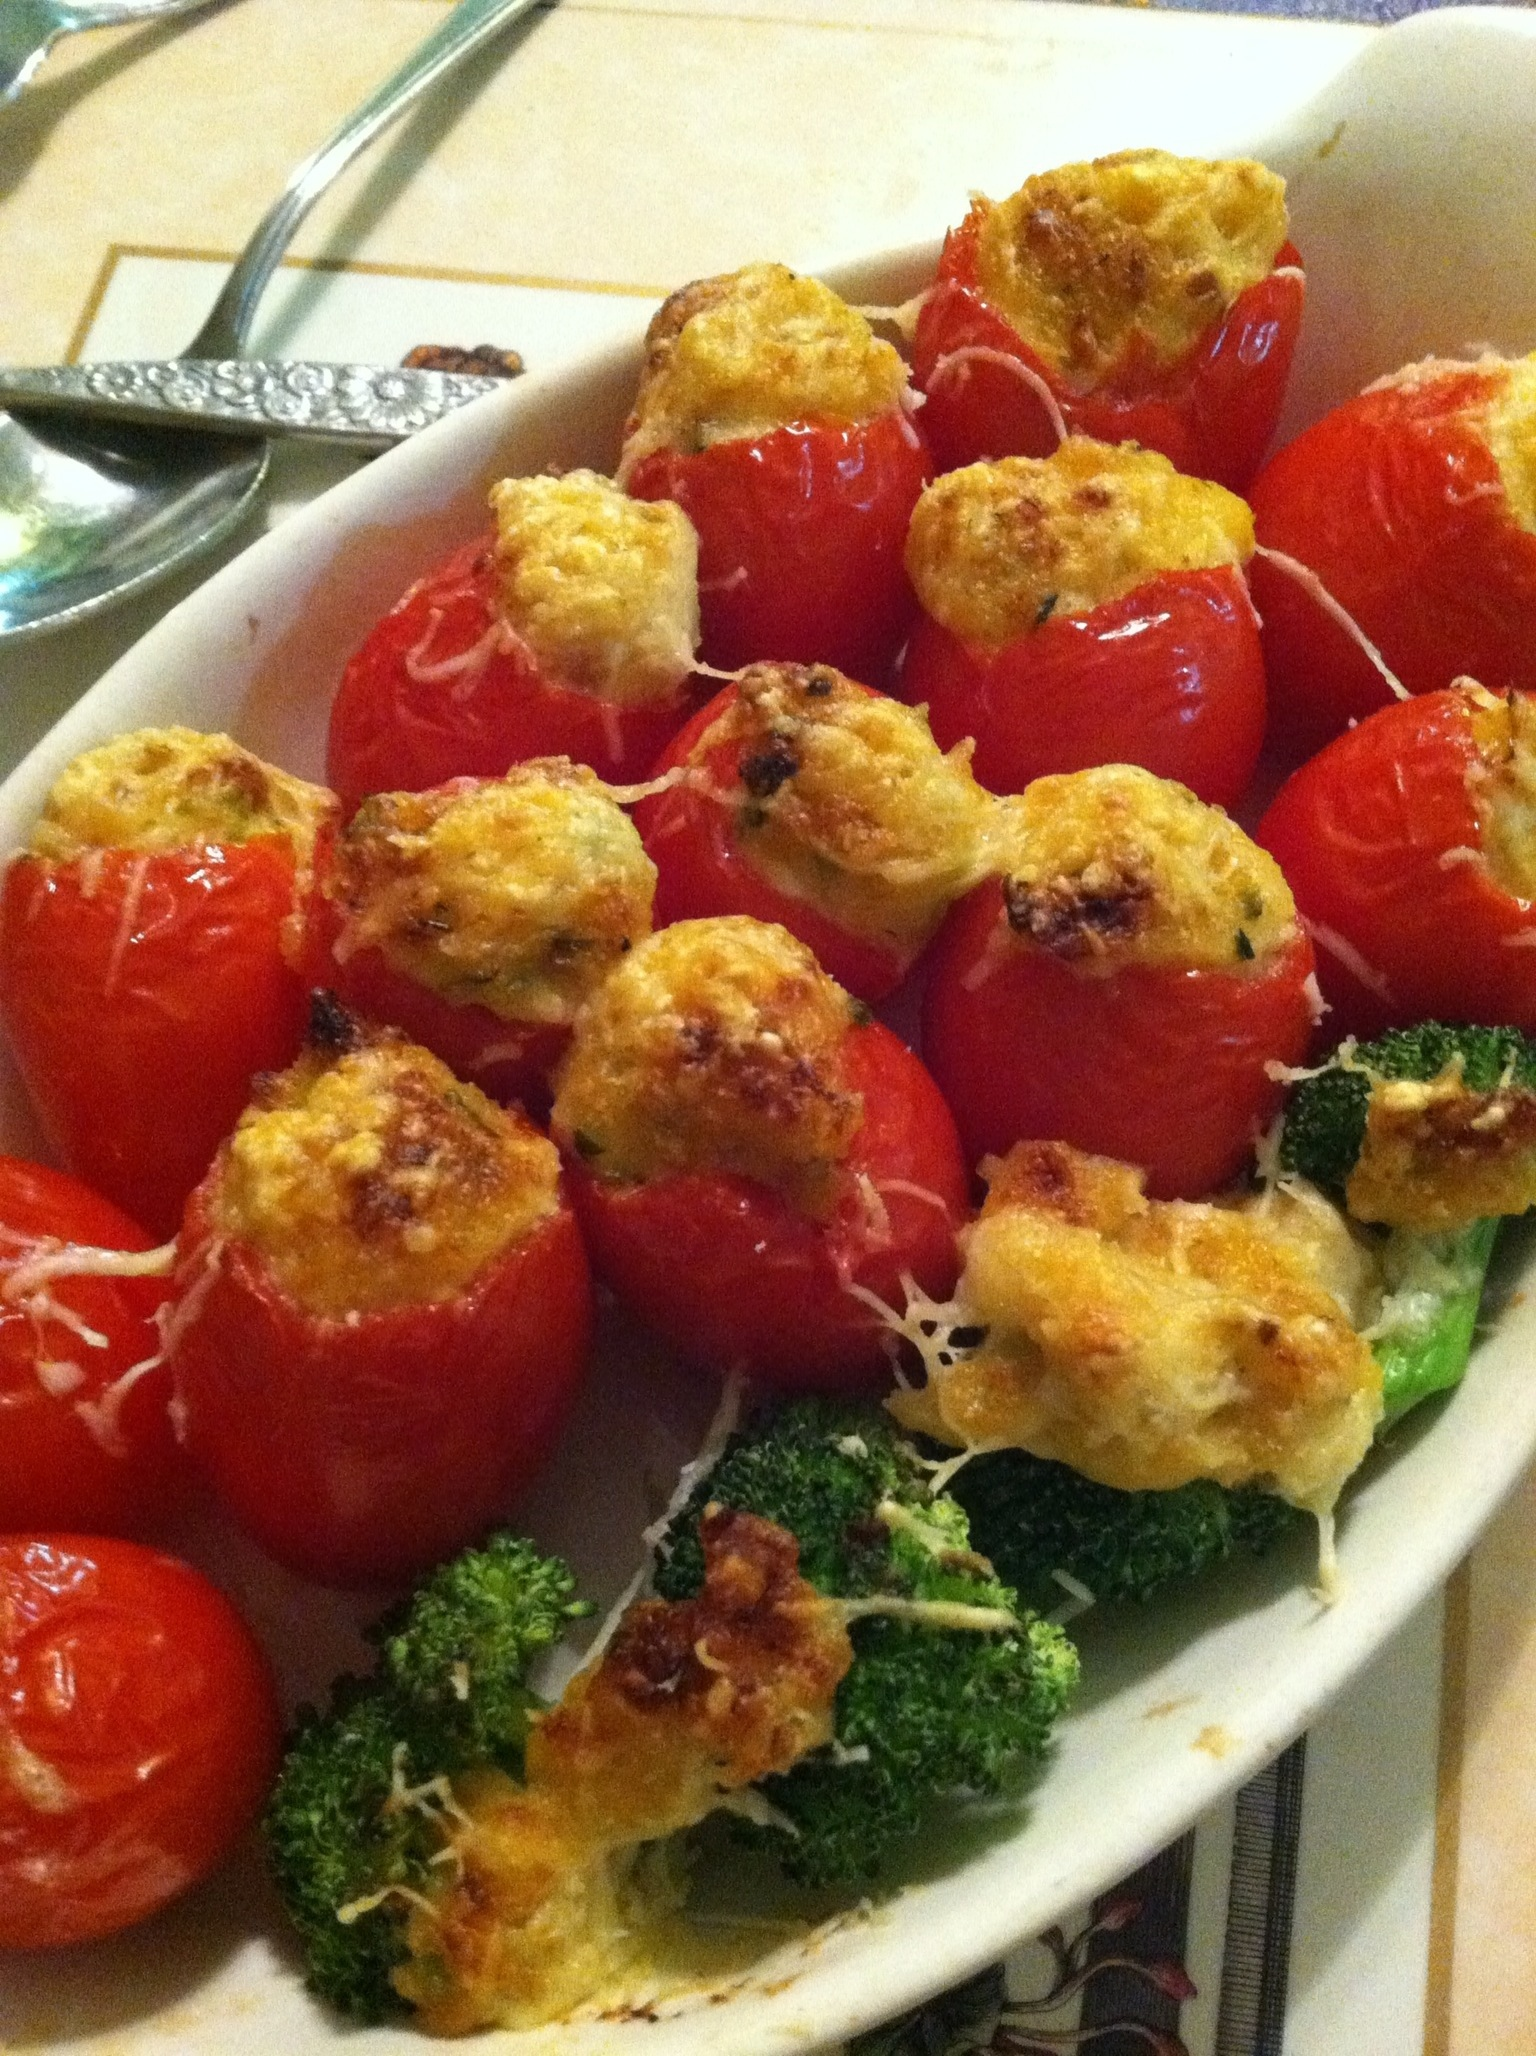 Crabmeat Stuffed Tomatoes